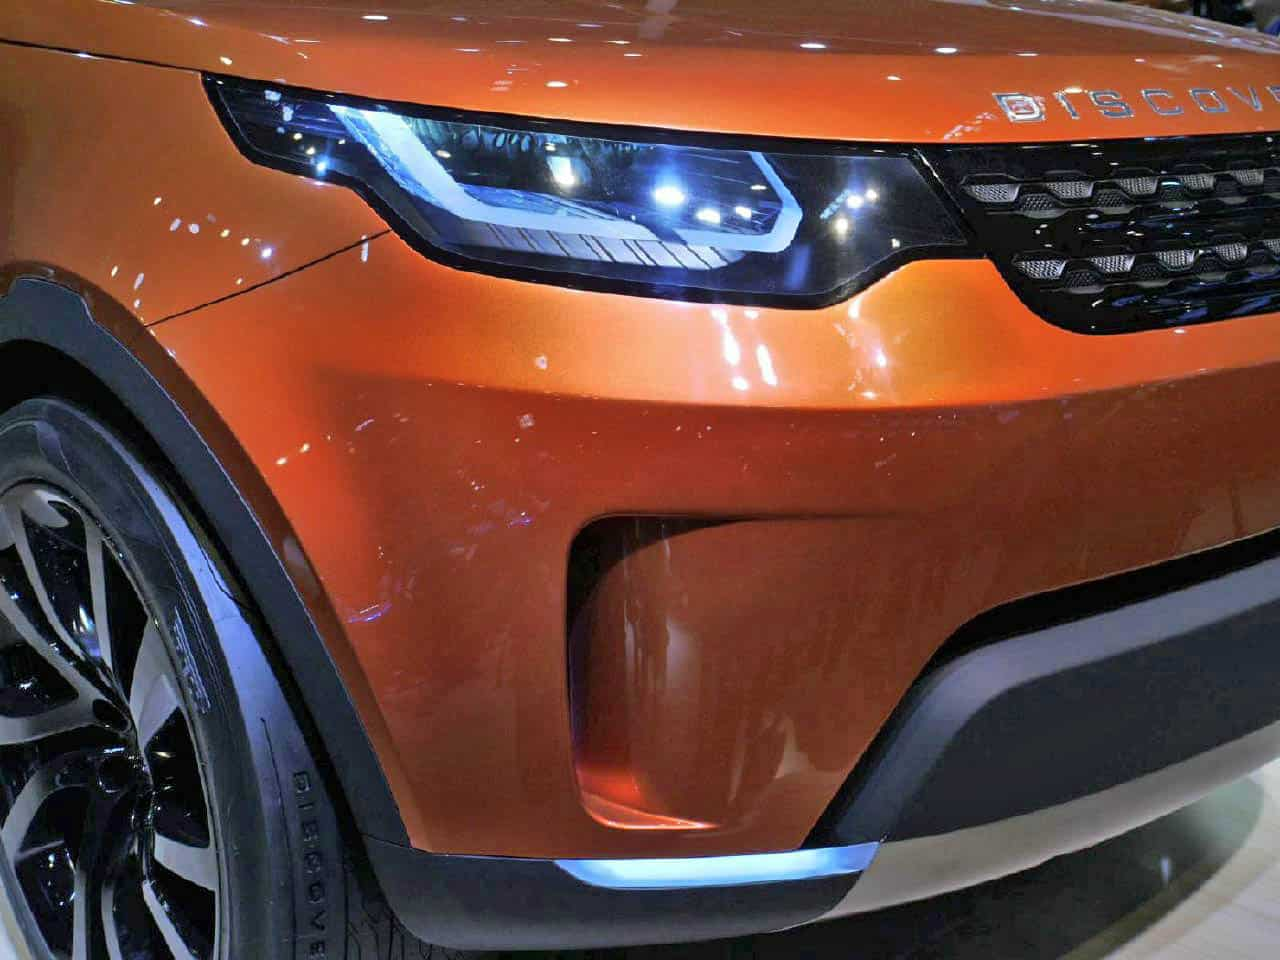 https://www.formtrends.com/wp-content/uploads/2014/06/land-rover_discovery-vision-concept_4831.jpg